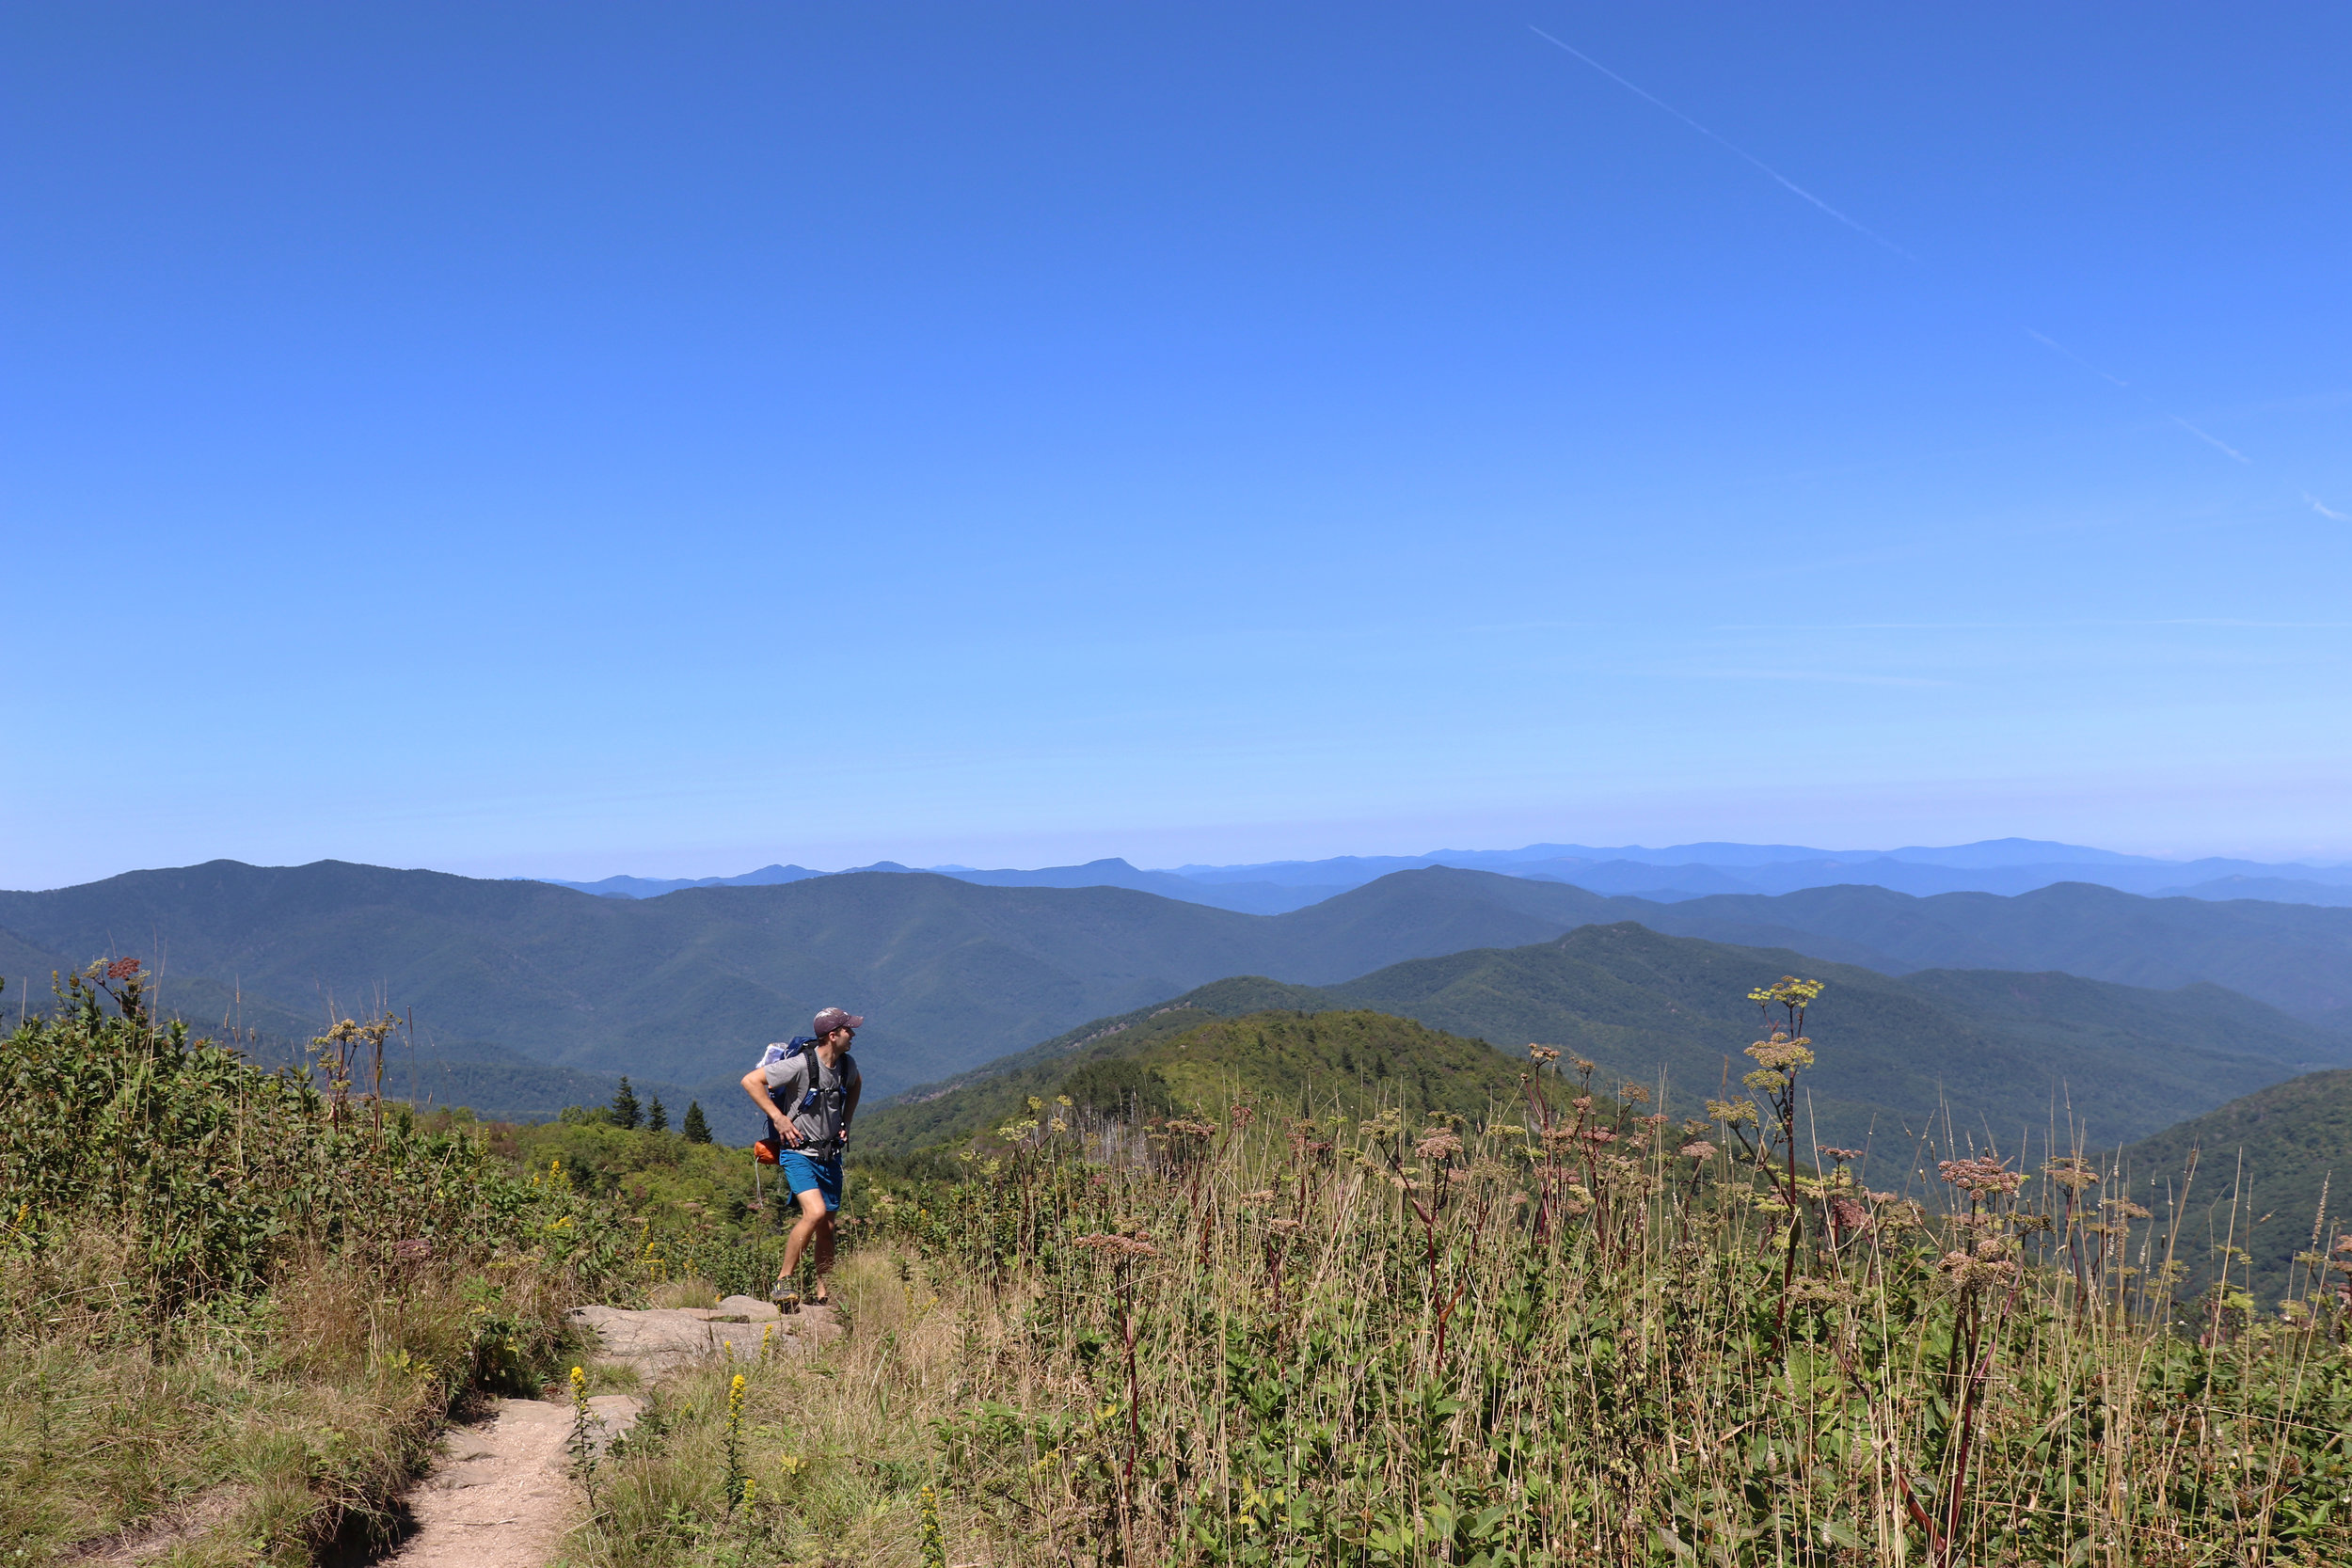 asheville-camping-trips-and-tips.JPG